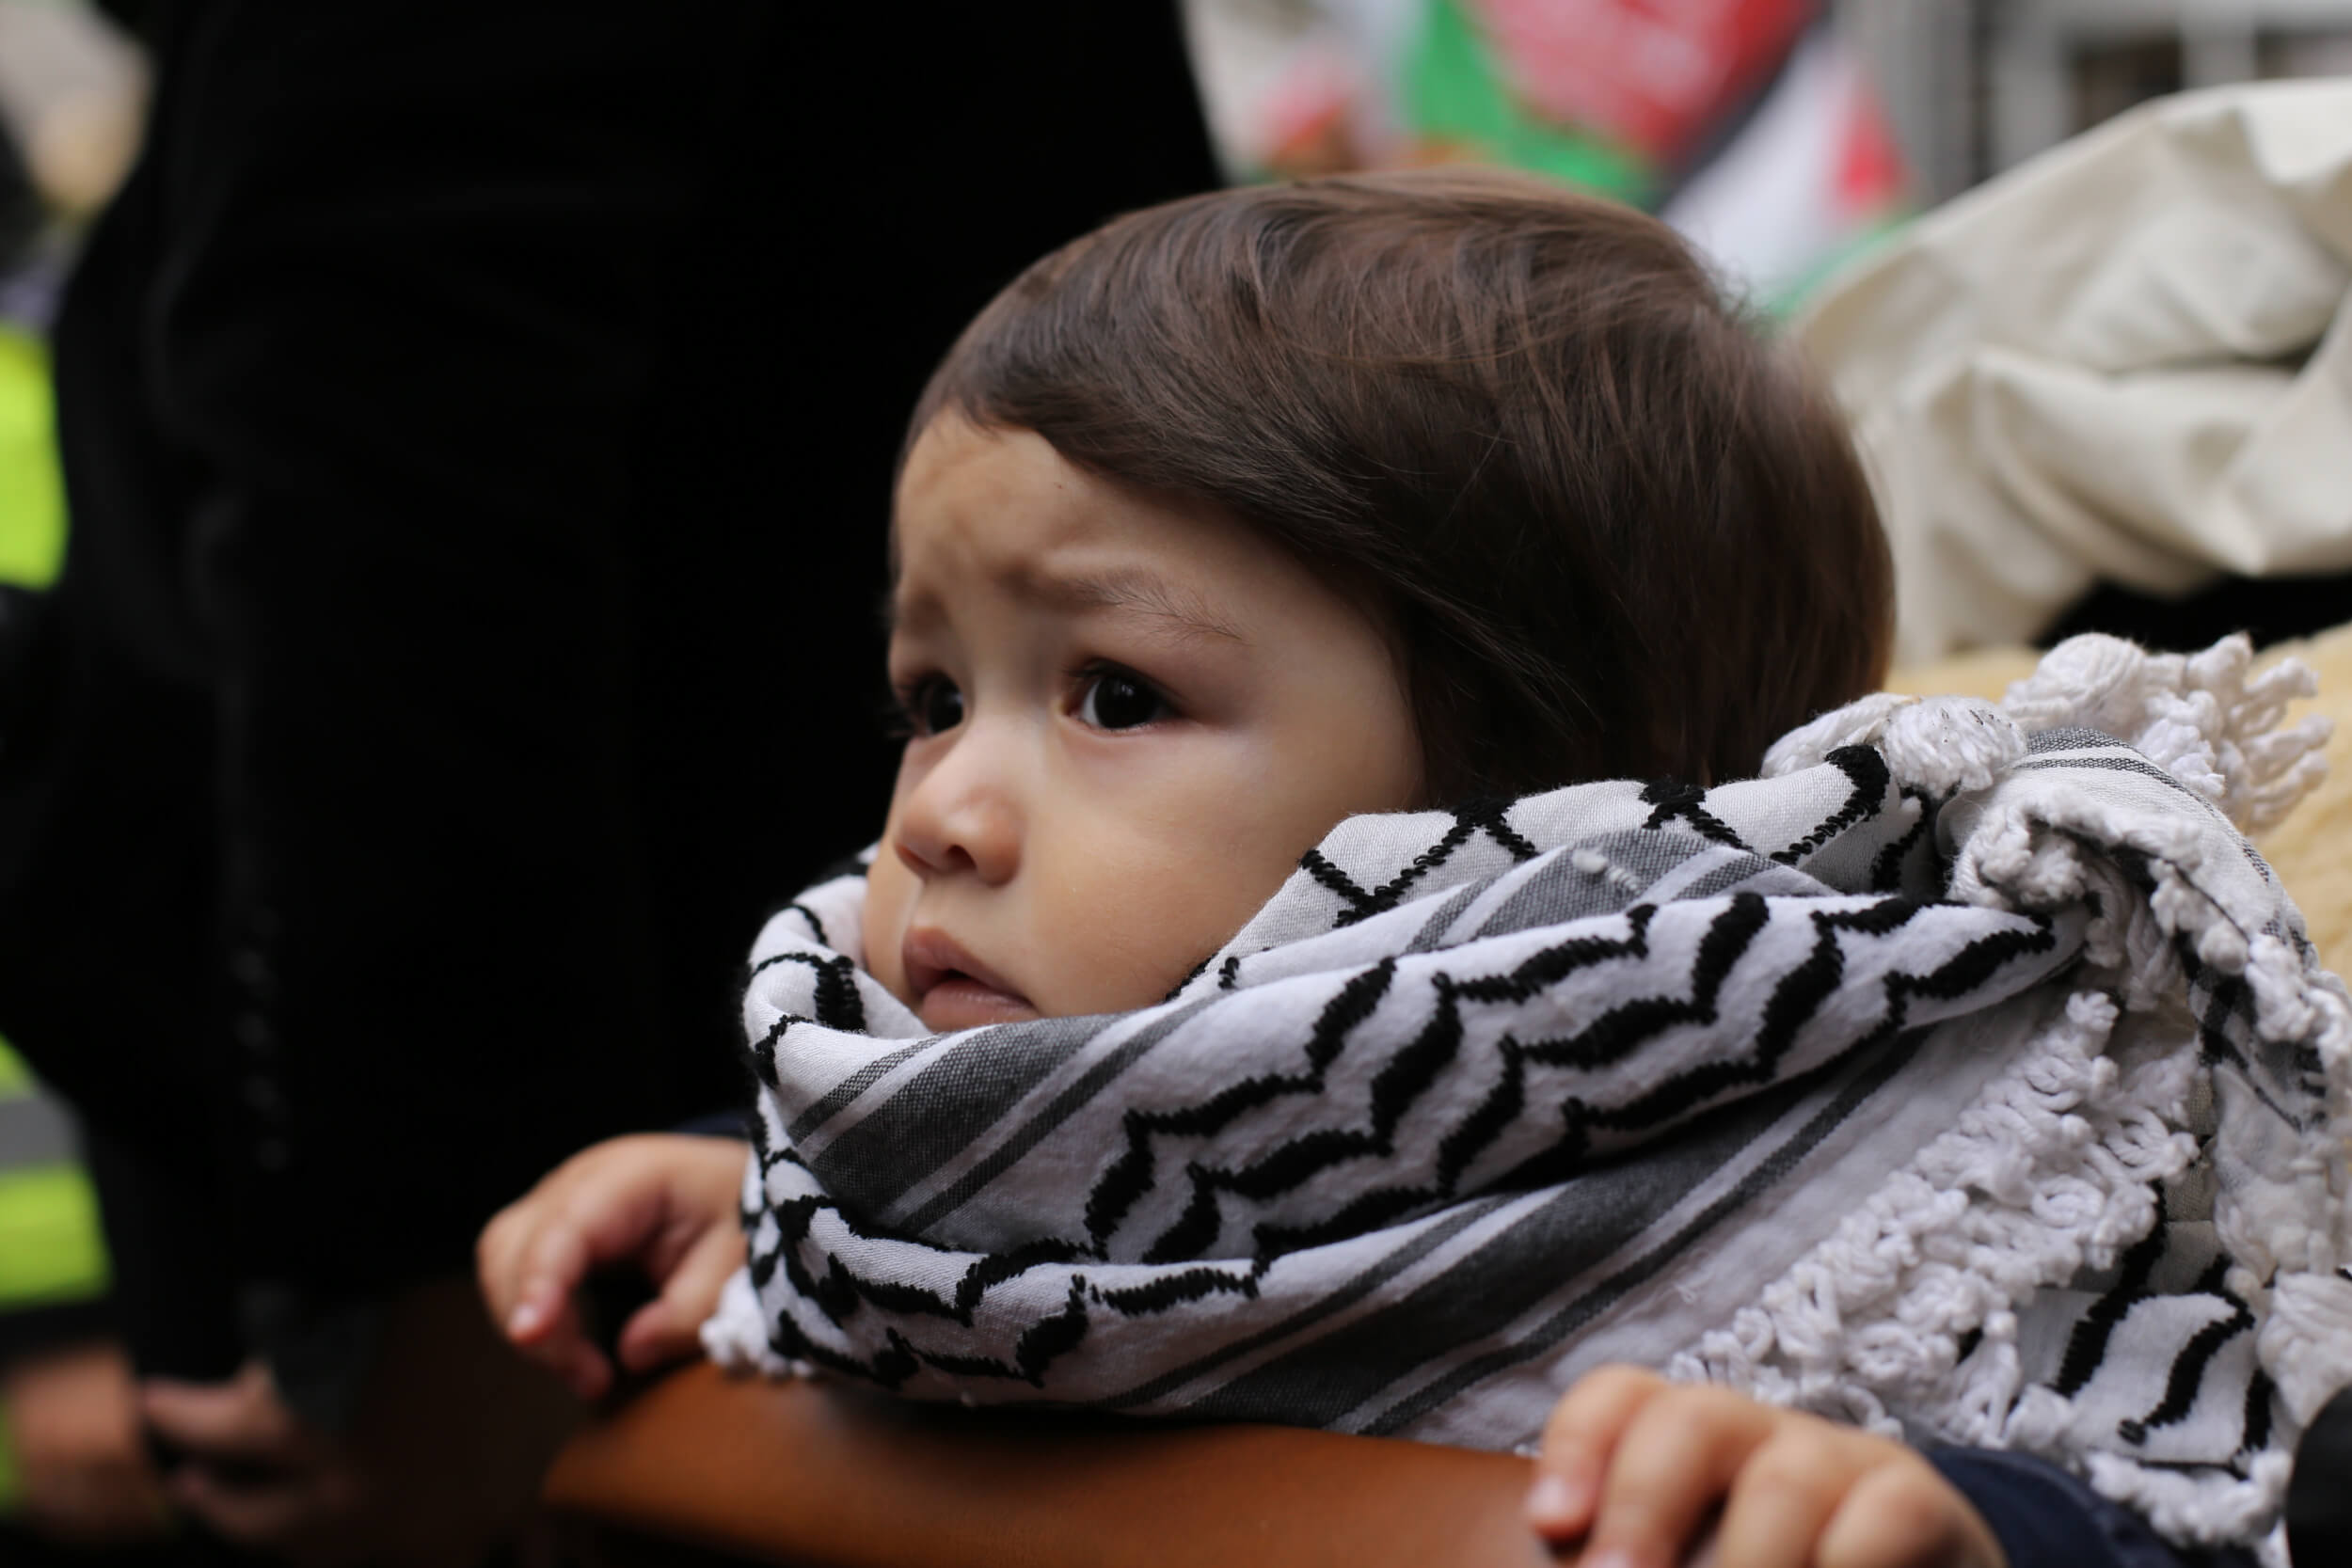 Families participated en masse, hoping for freedom for future generations of Palestinian children. (Photo: Sara Anna)